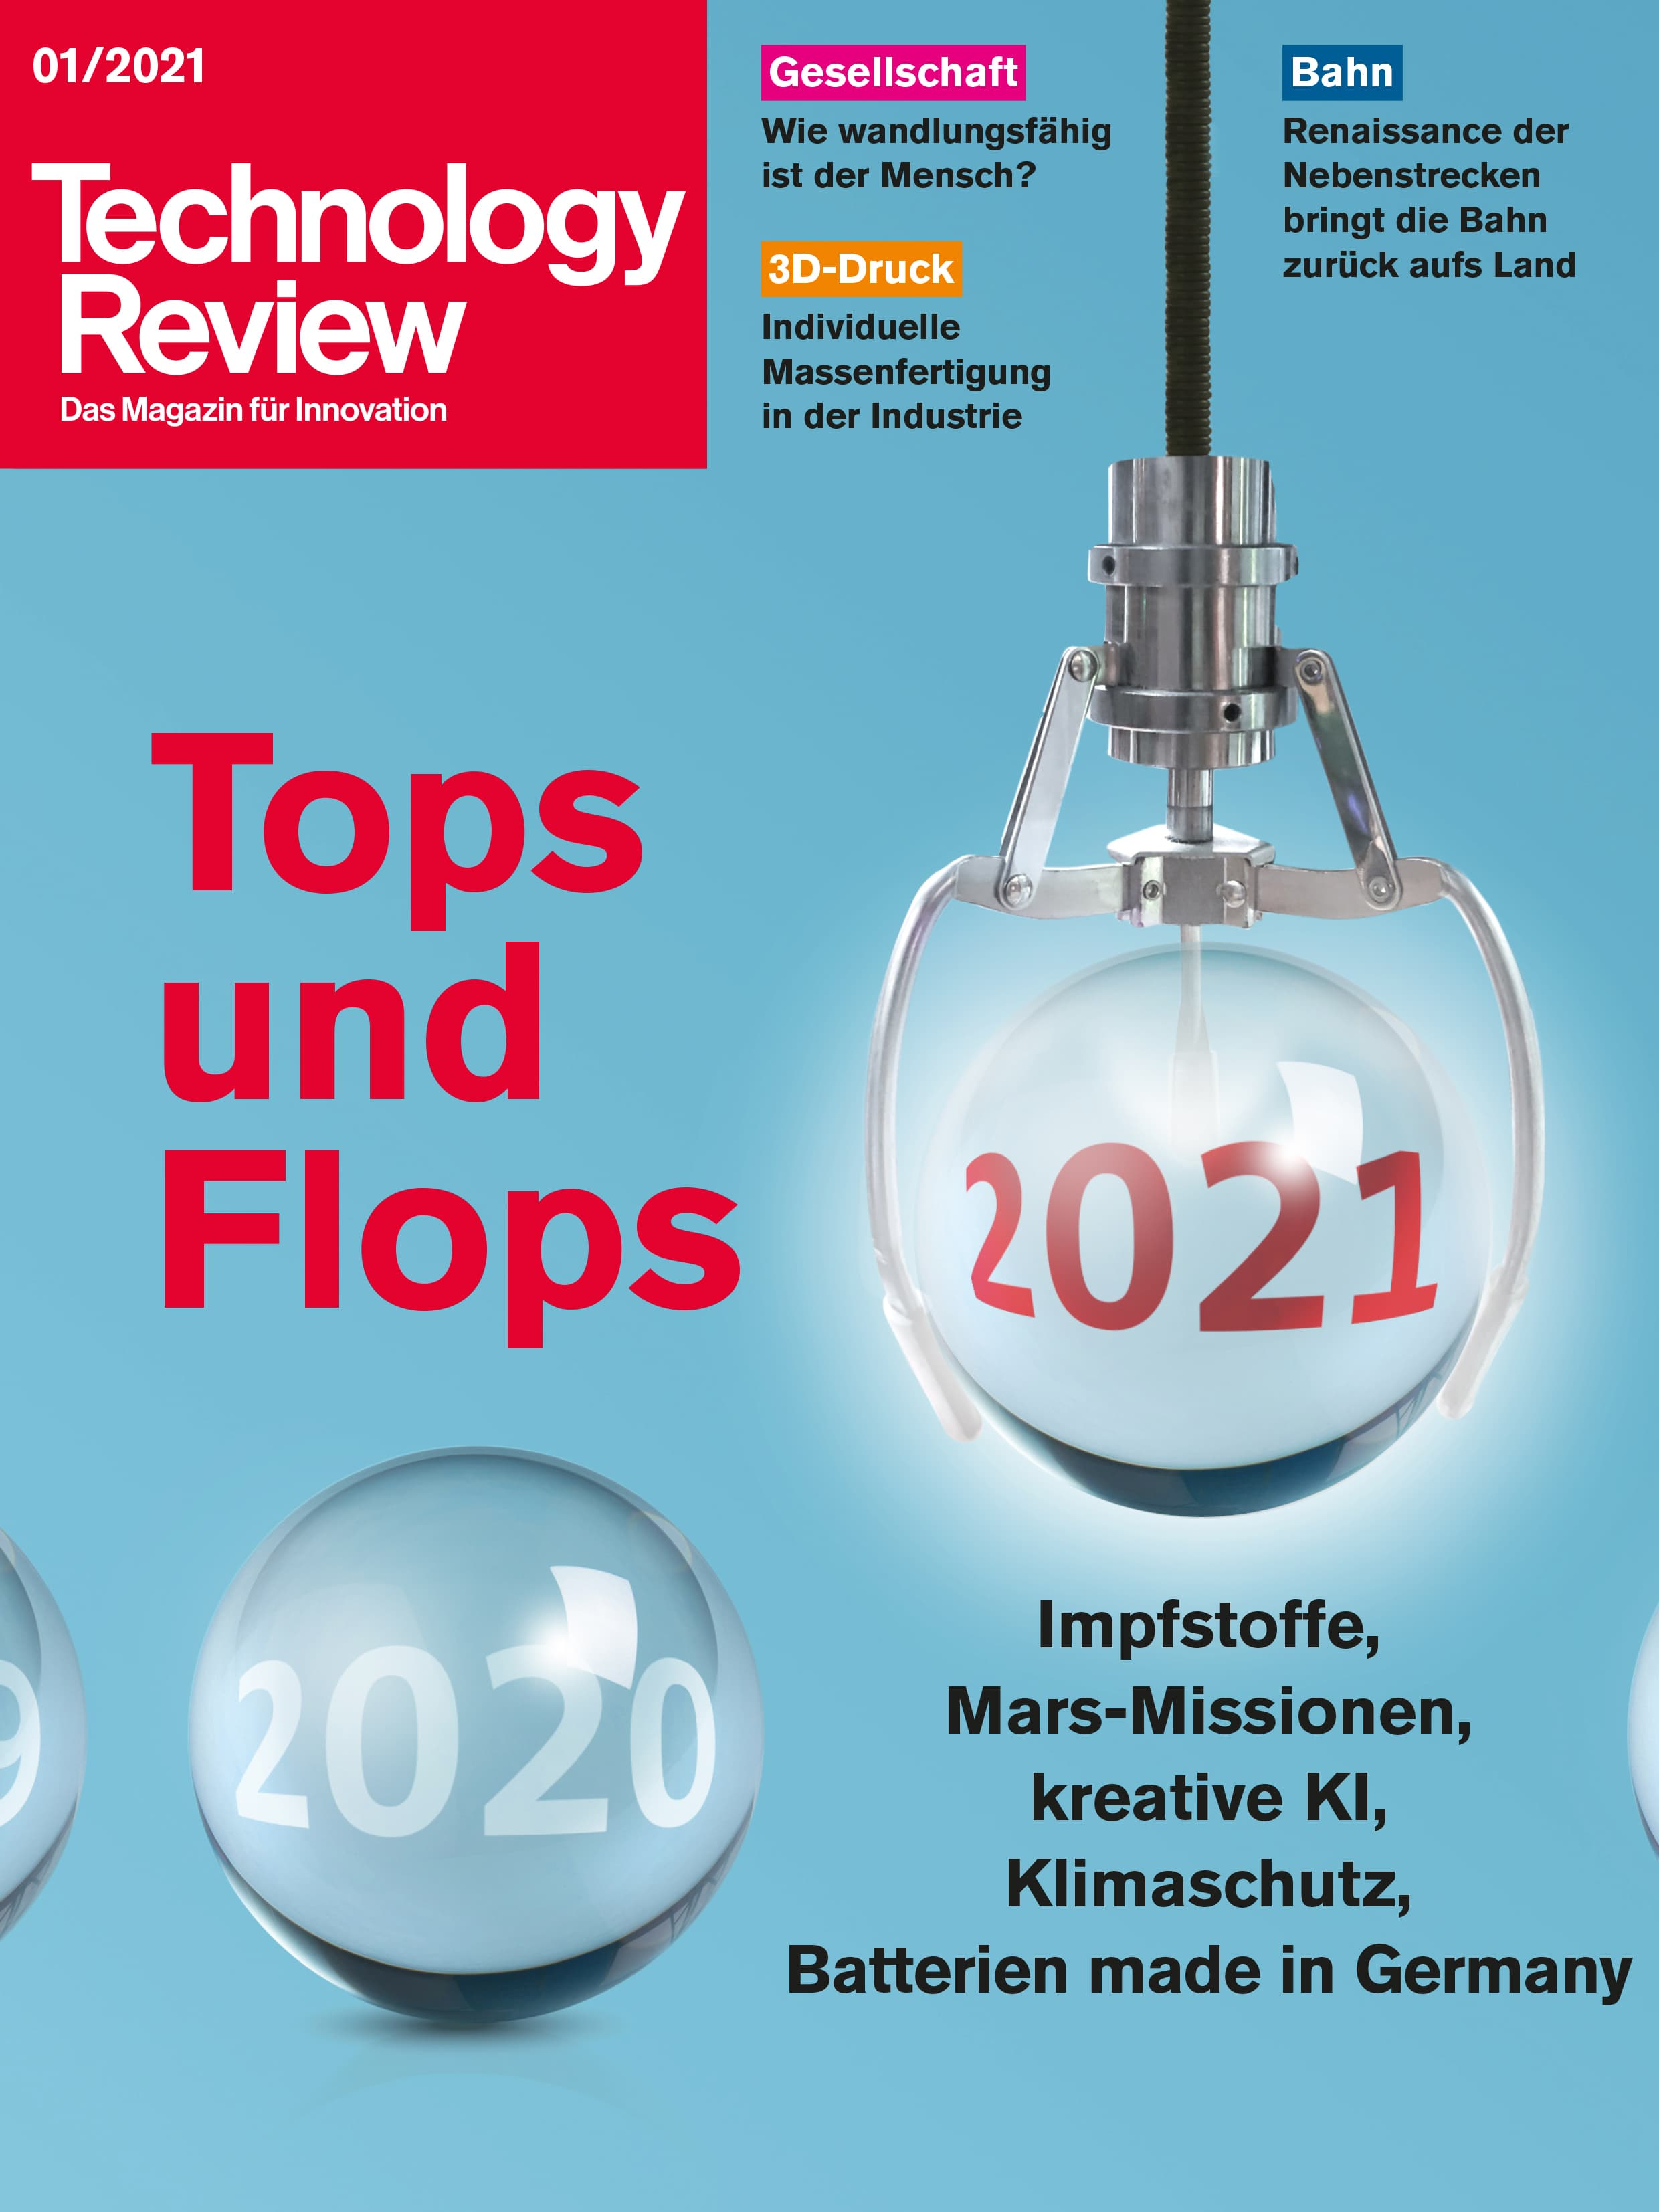 Technology Review 01/2021